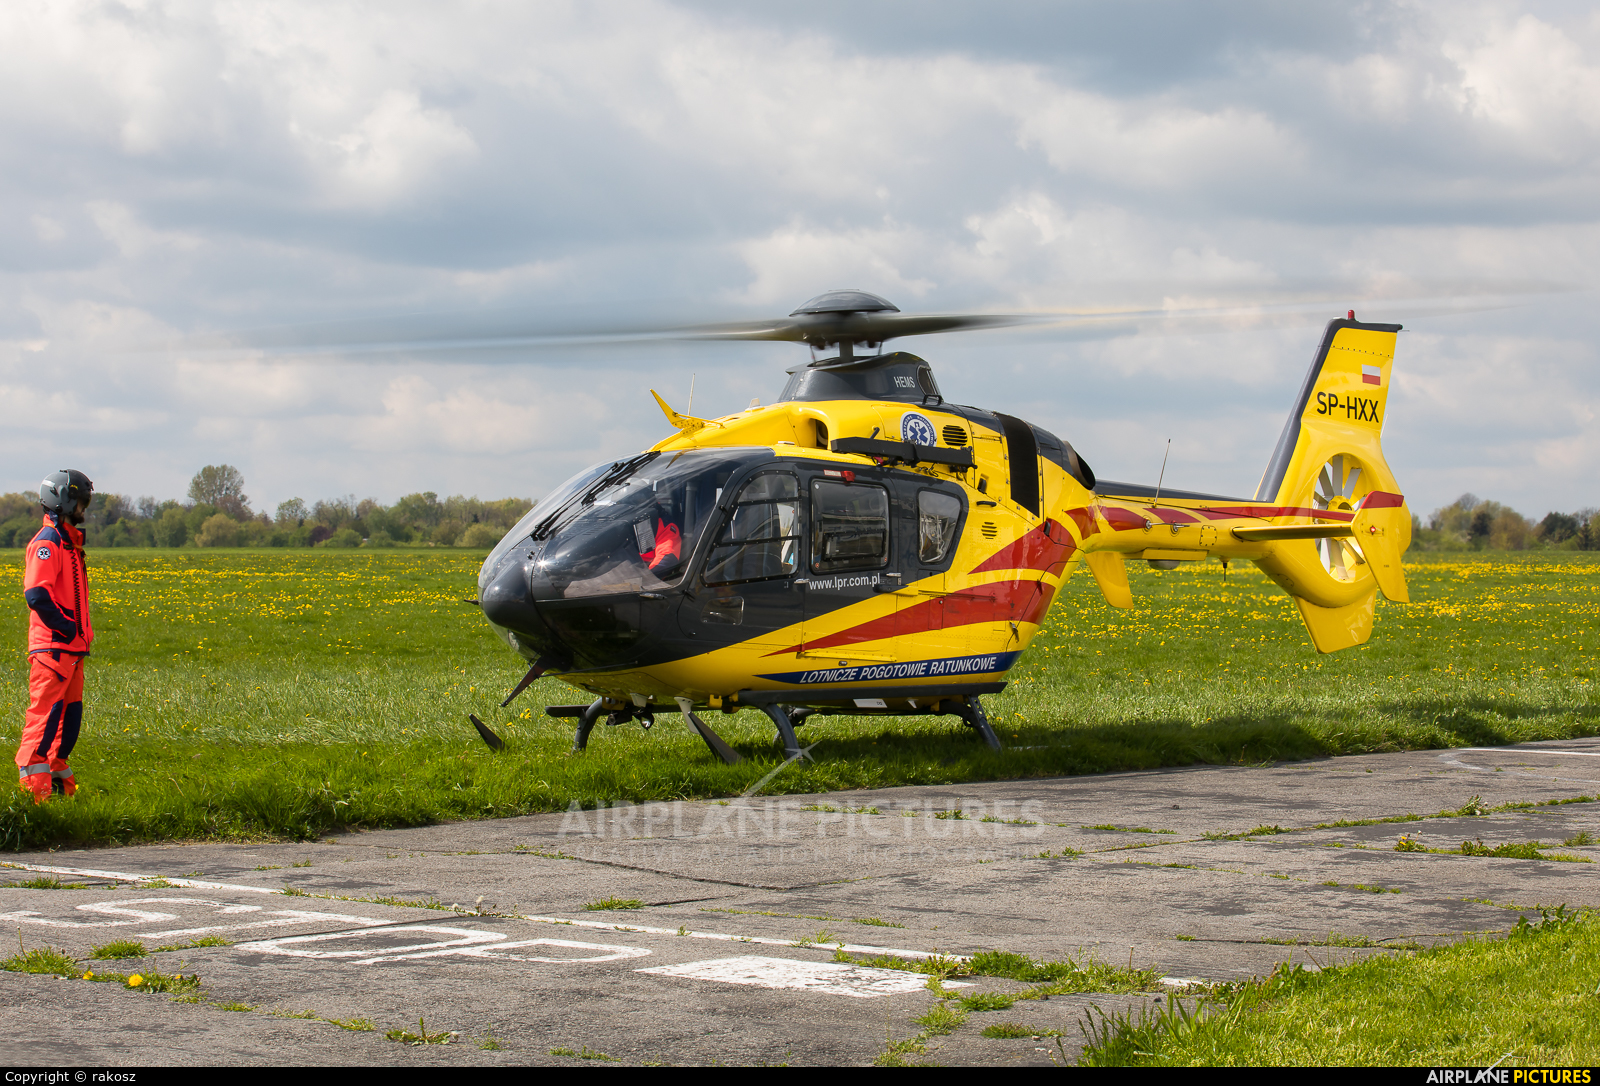 Polish Medical Air Rescue - Lotnicze Pogotowie Ratunkowe SP-HXX aircraft at Gliwice